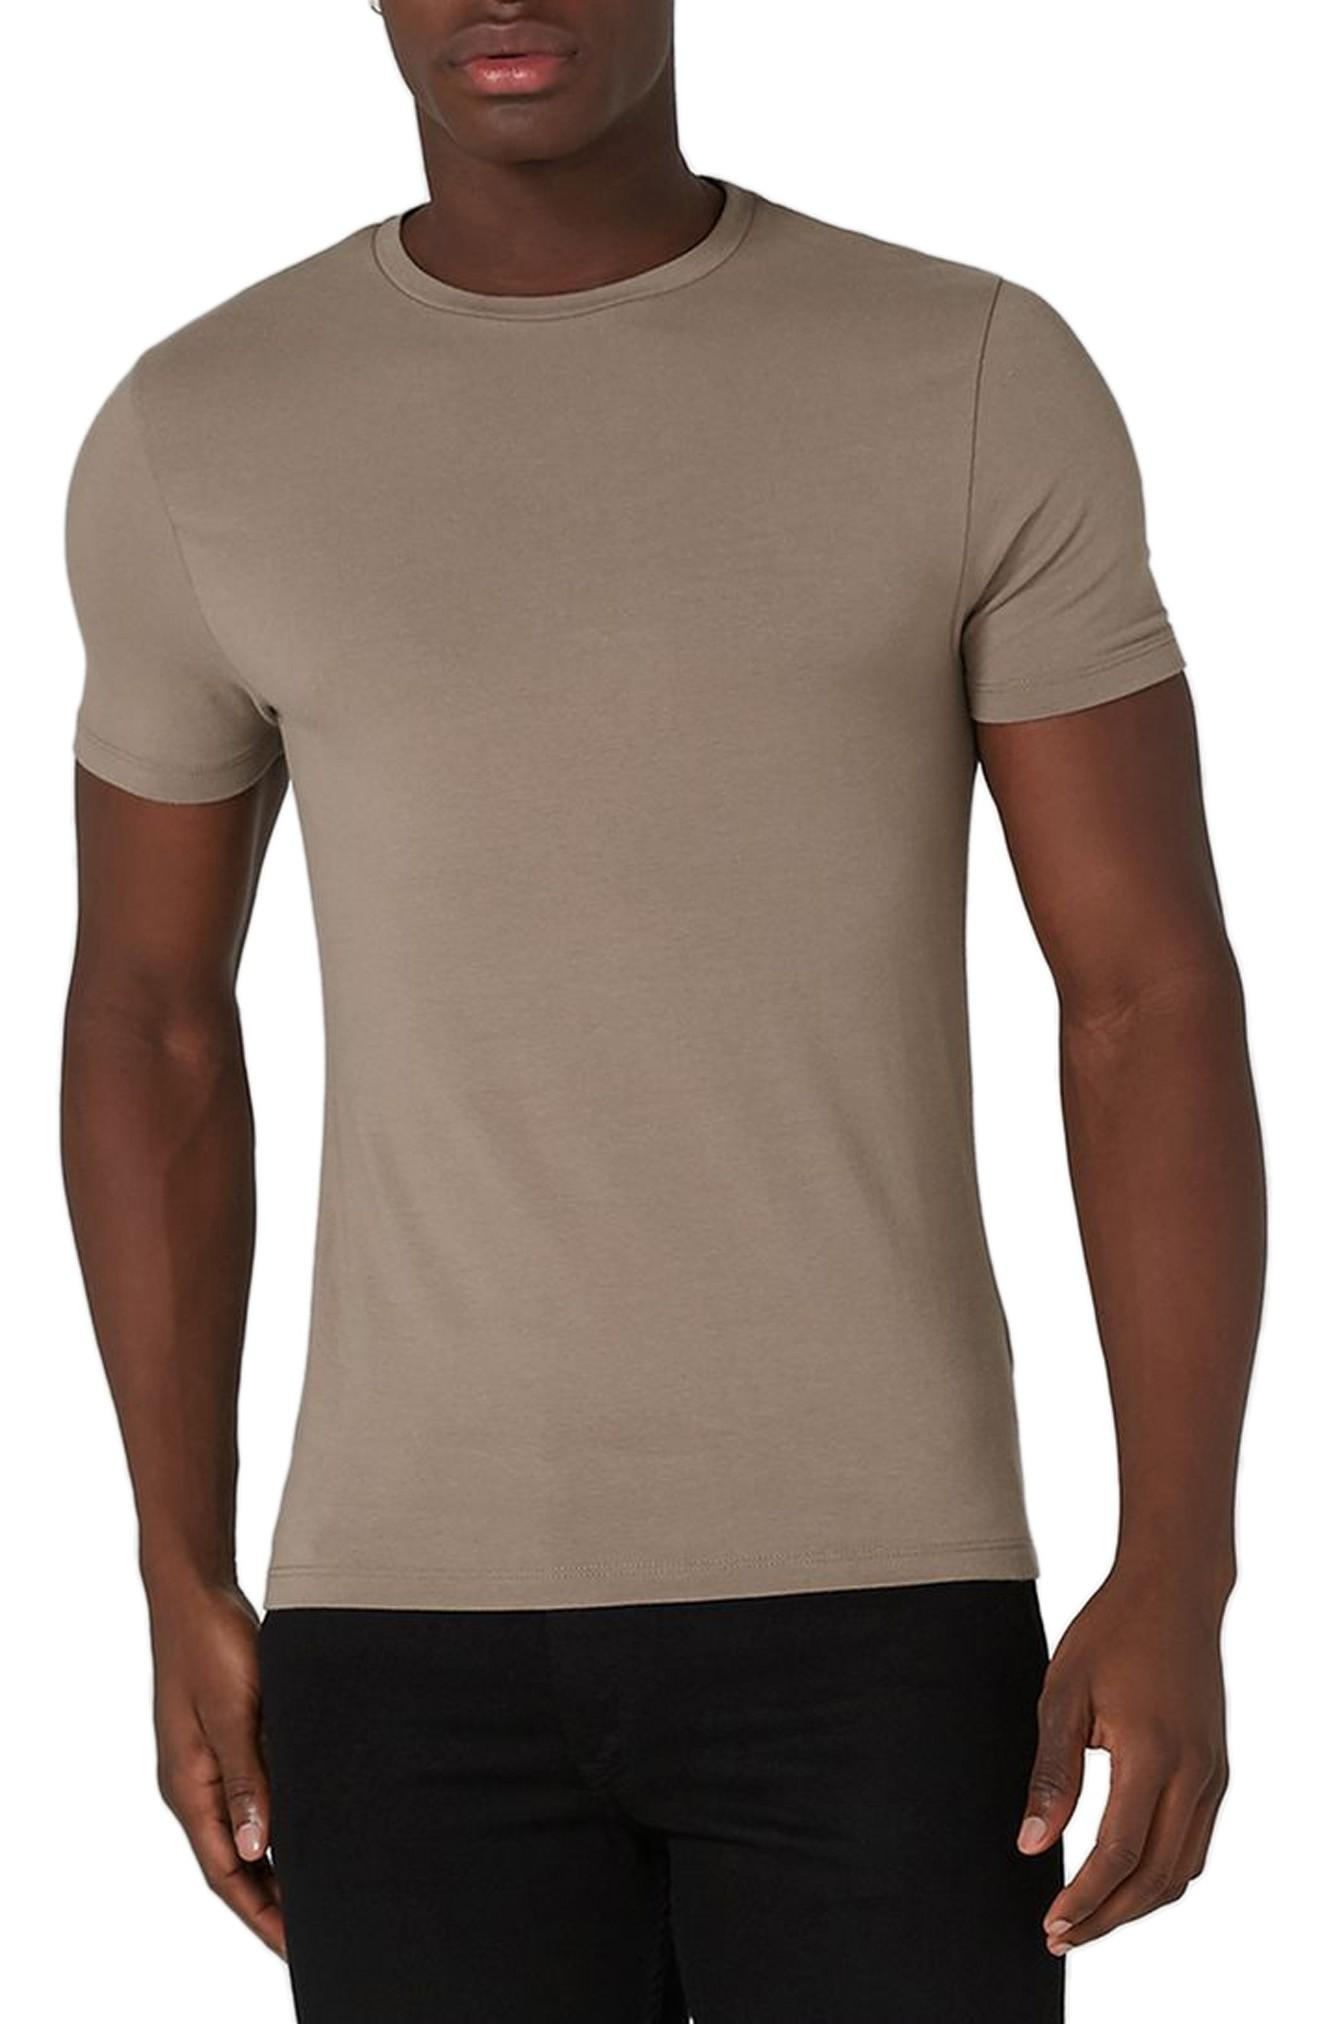 Topman Ultra Muscle Fit T-shirt In Taupe